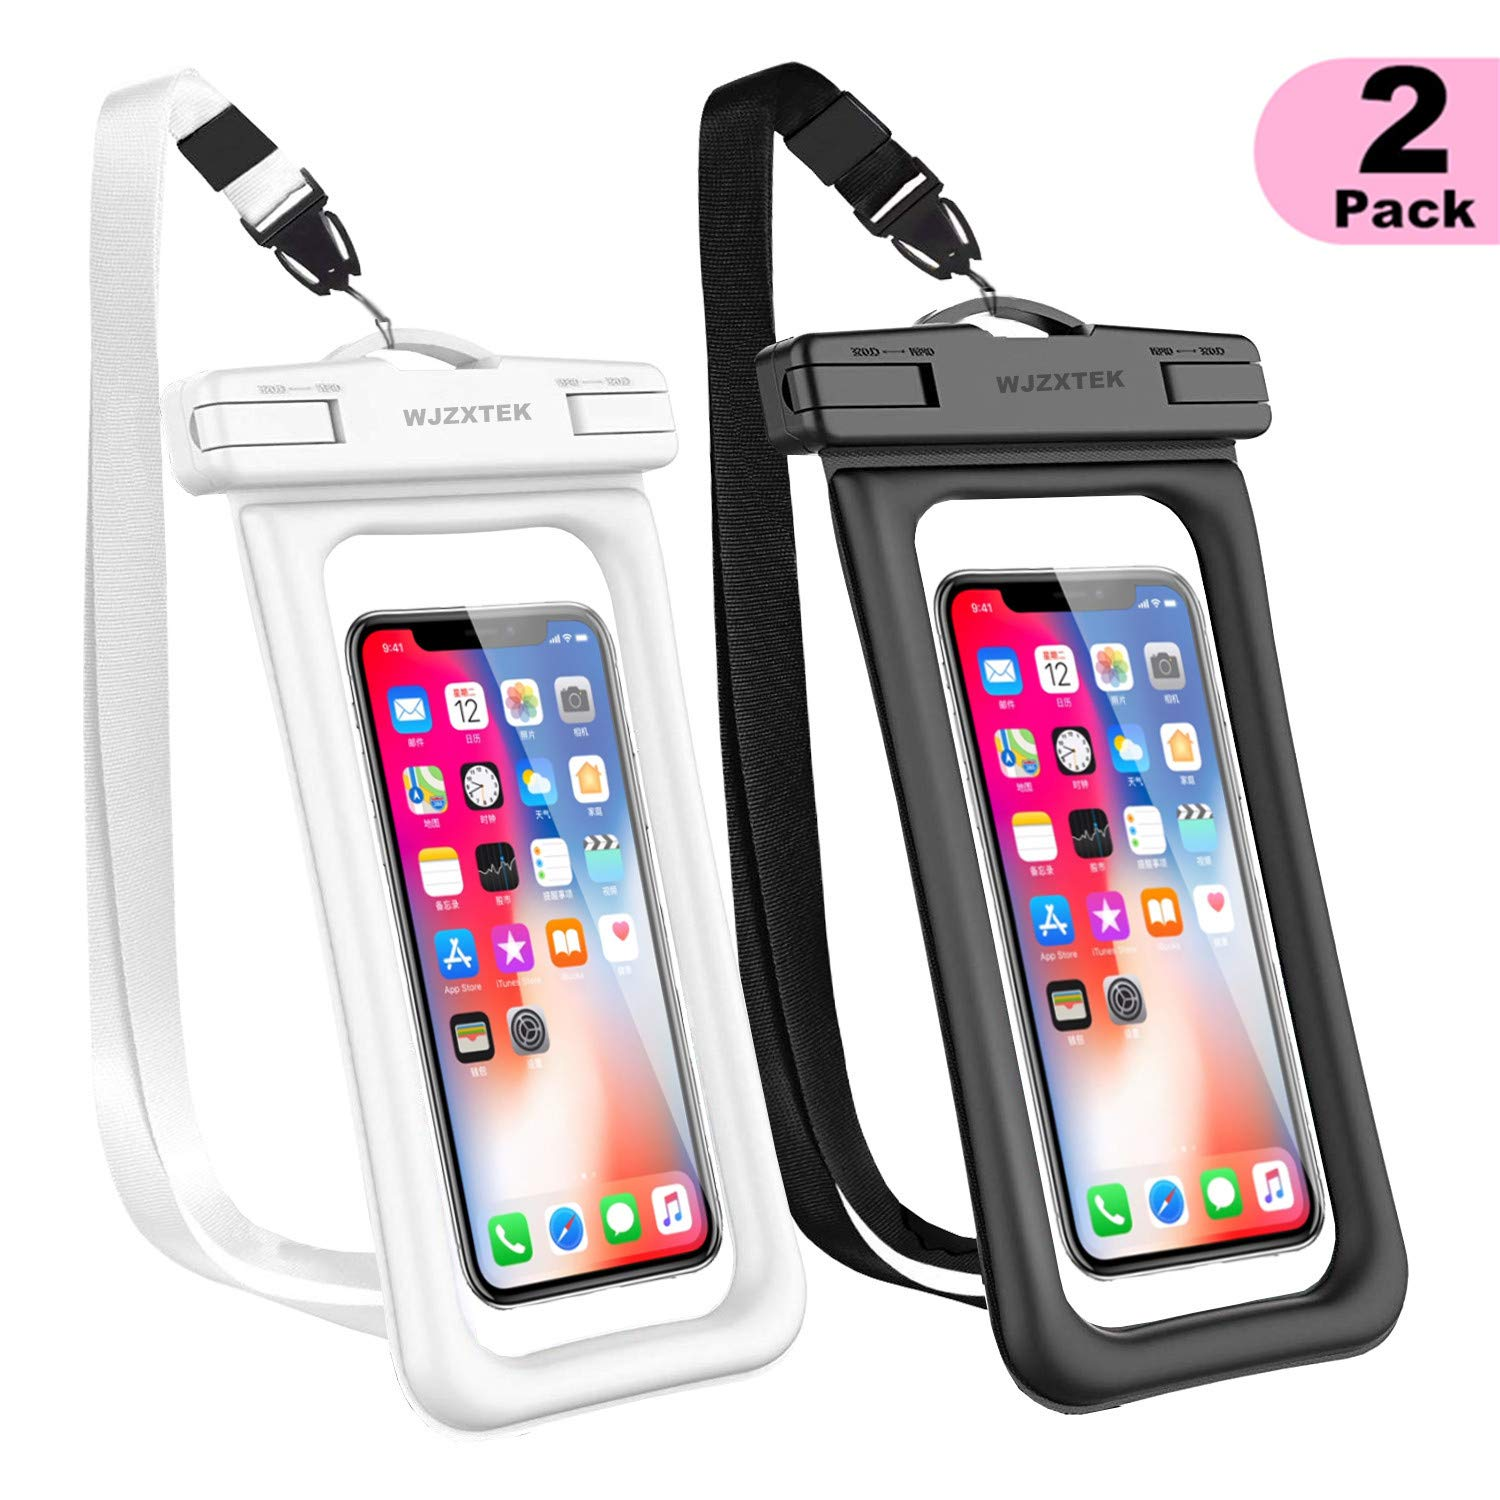 WJZXTEK Universal Floating Waterproof Case,IPX8 Waterproof Phone Pouch Underwater Dry Bag,Compatible iPhone Xs Max/Xr/X/8/8plus/7/7plus Galaxy s9/s8 Note 9/8 Google Pixel up to 6.5